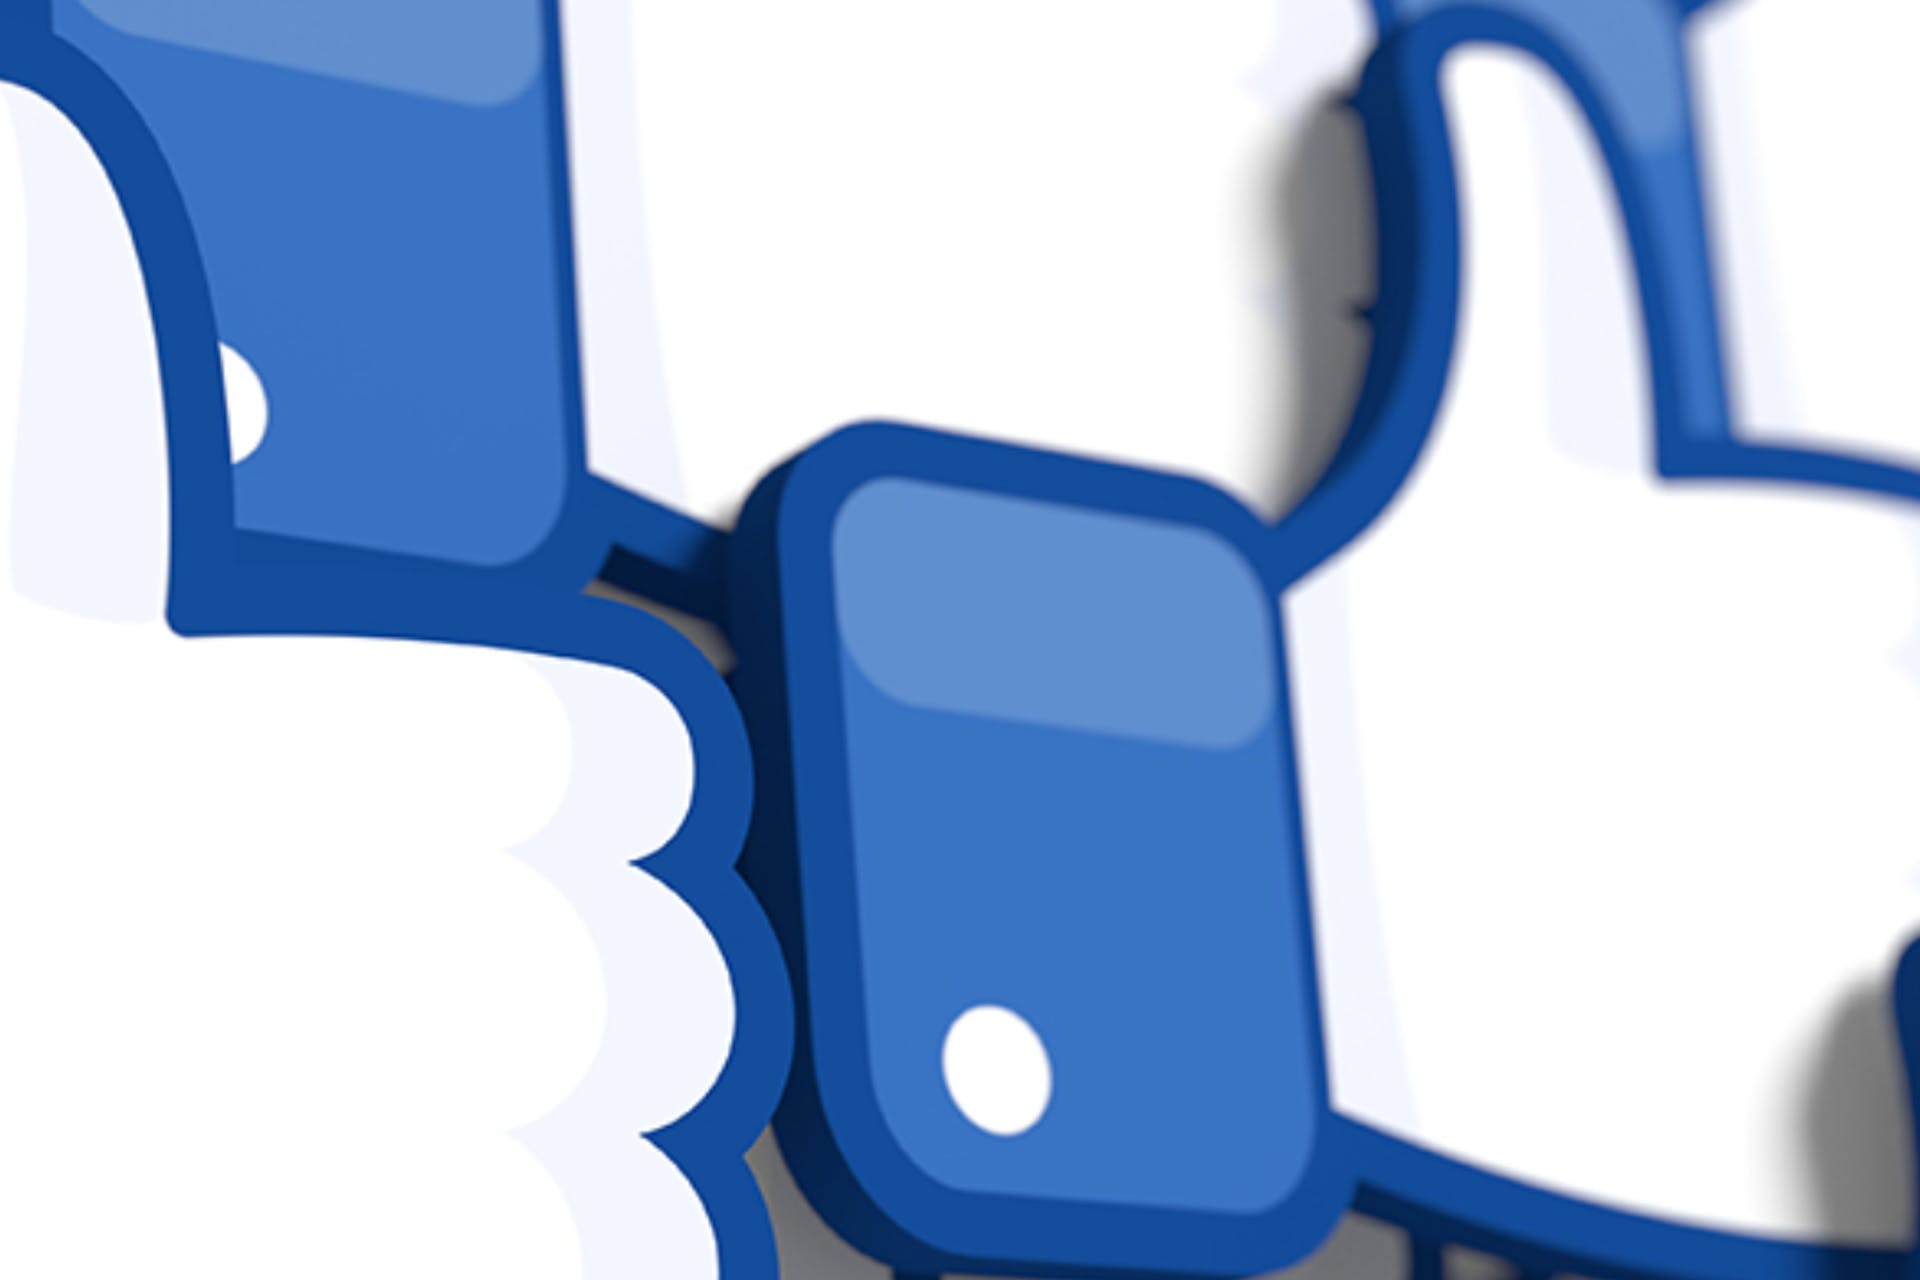 You see a photo of Facebook Like icons as the header image for our blog about Facebook Marketing Tips.